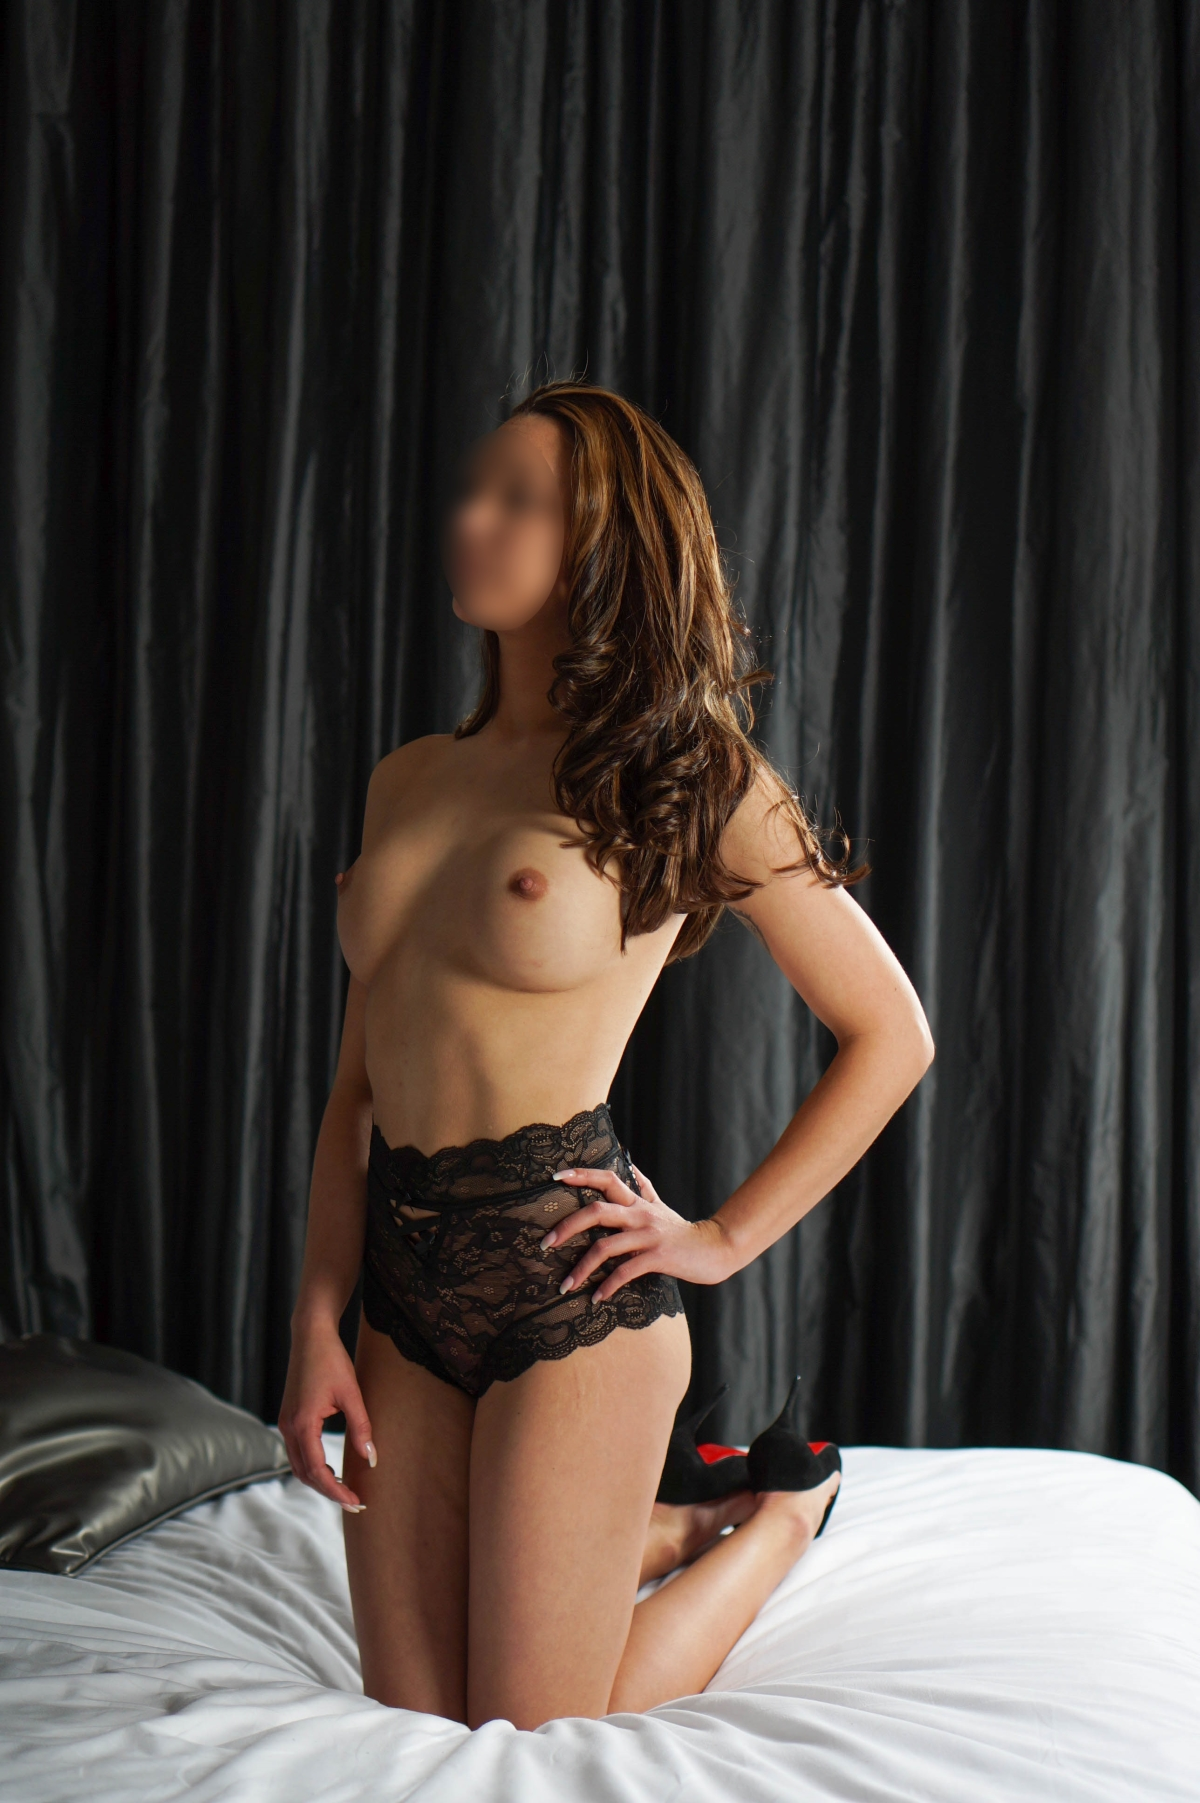 escort thai oslo escort and massage services